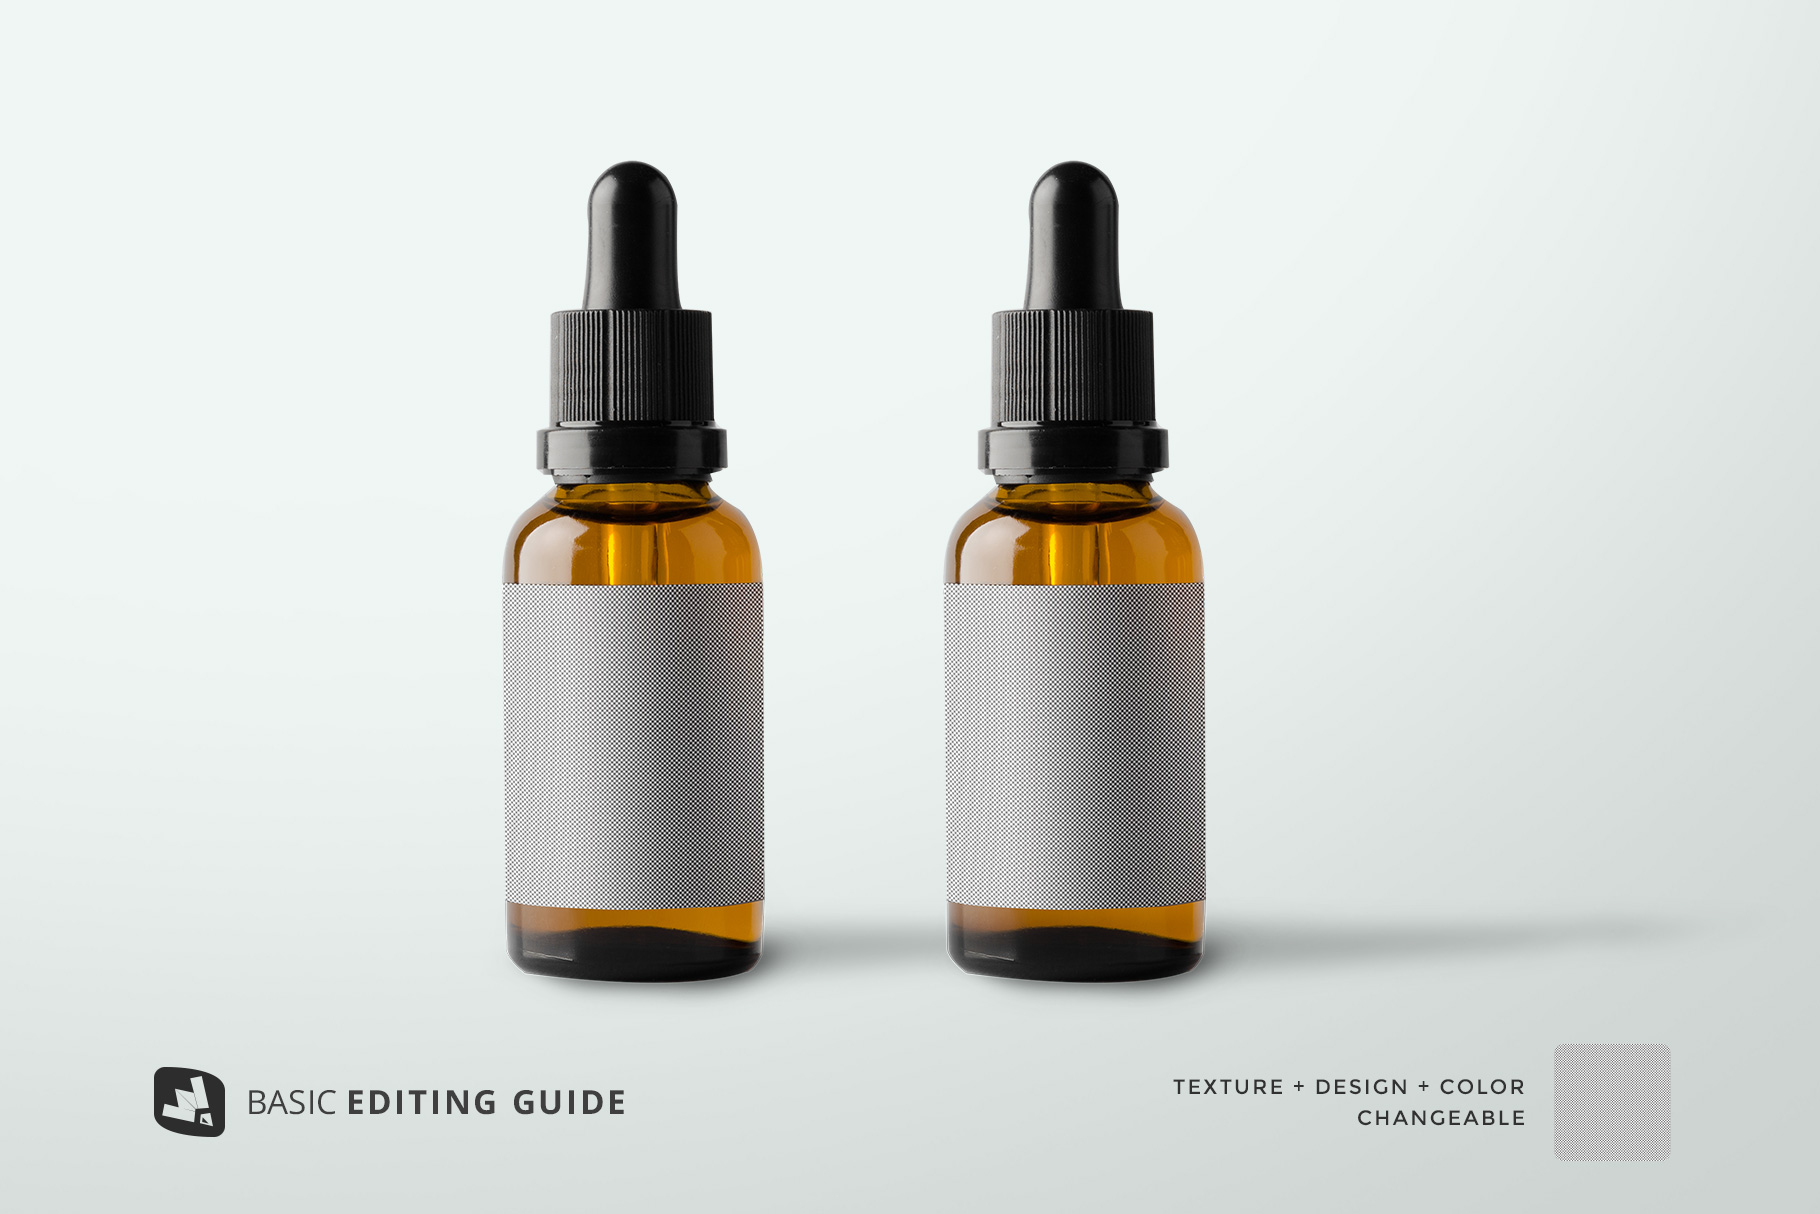 editability of the essential oil bottle packaging mockup